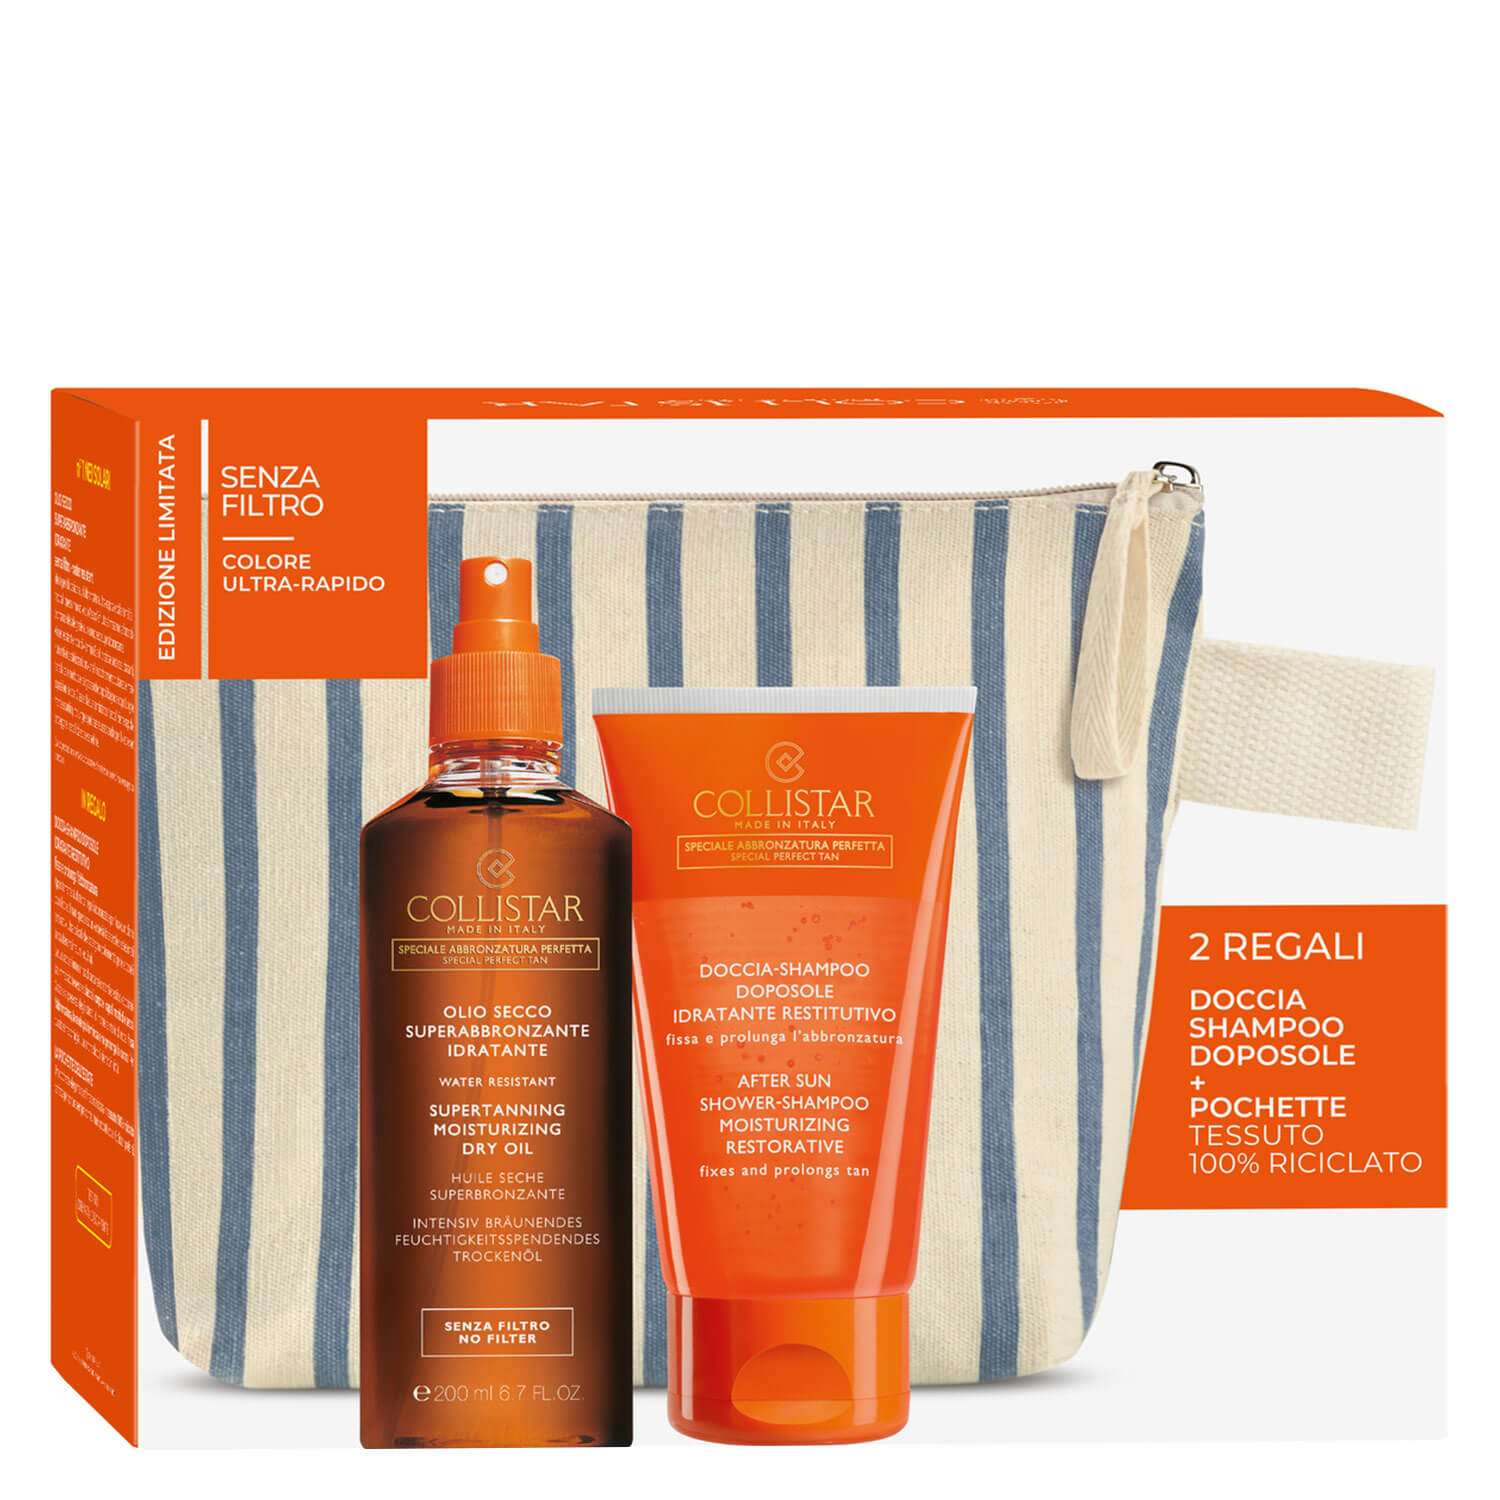 CS Sun - Supertanning Dry Oil No Filter Set